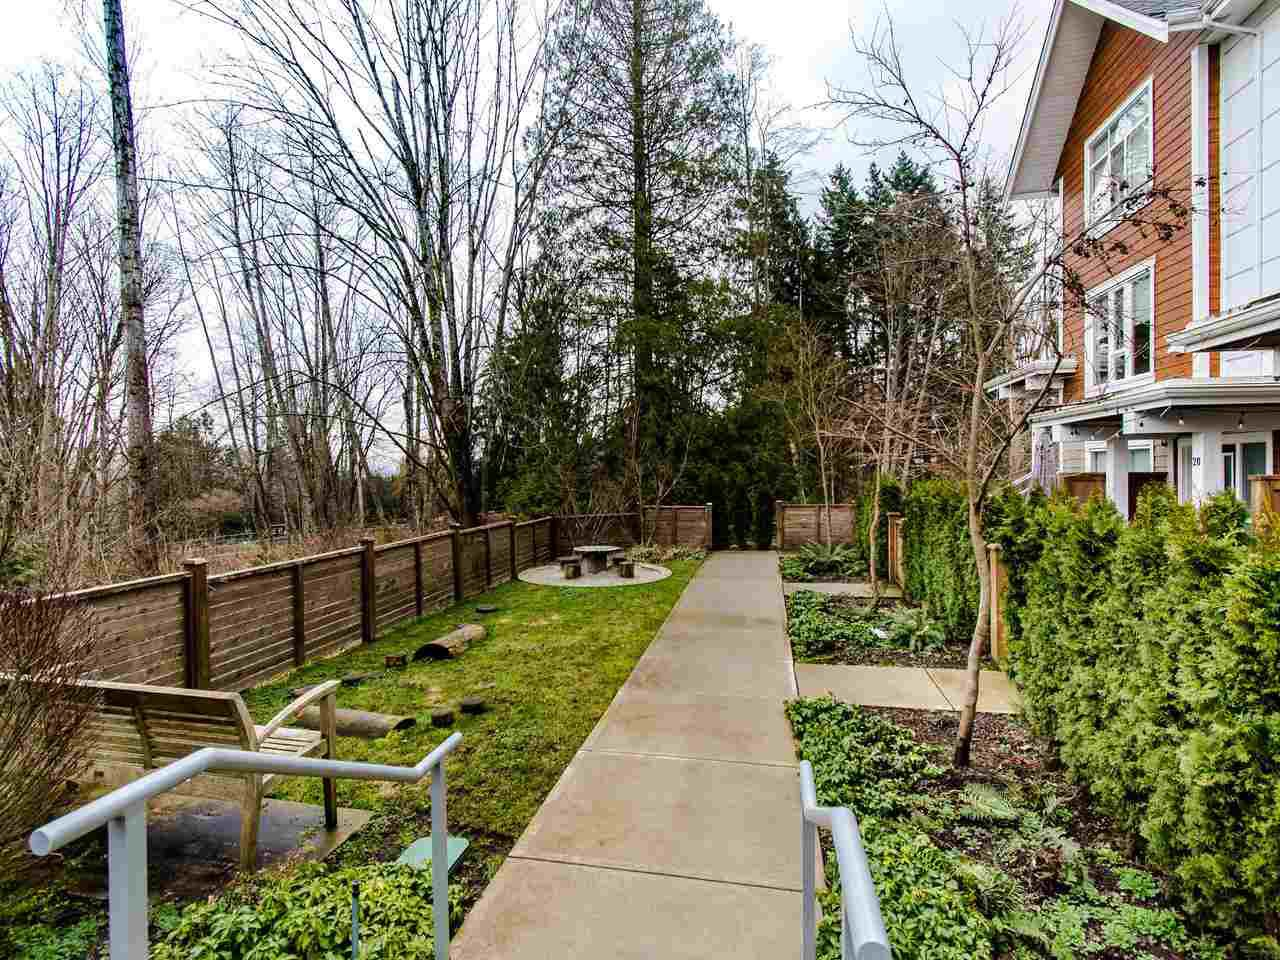 """Main Photo: 21 2958 159 Street in Surrey: Grandview Surrey Townhouse for sale in """"WILLS BROOK"""" (South Surrey White Rock)  : MLS®# R2436123"""